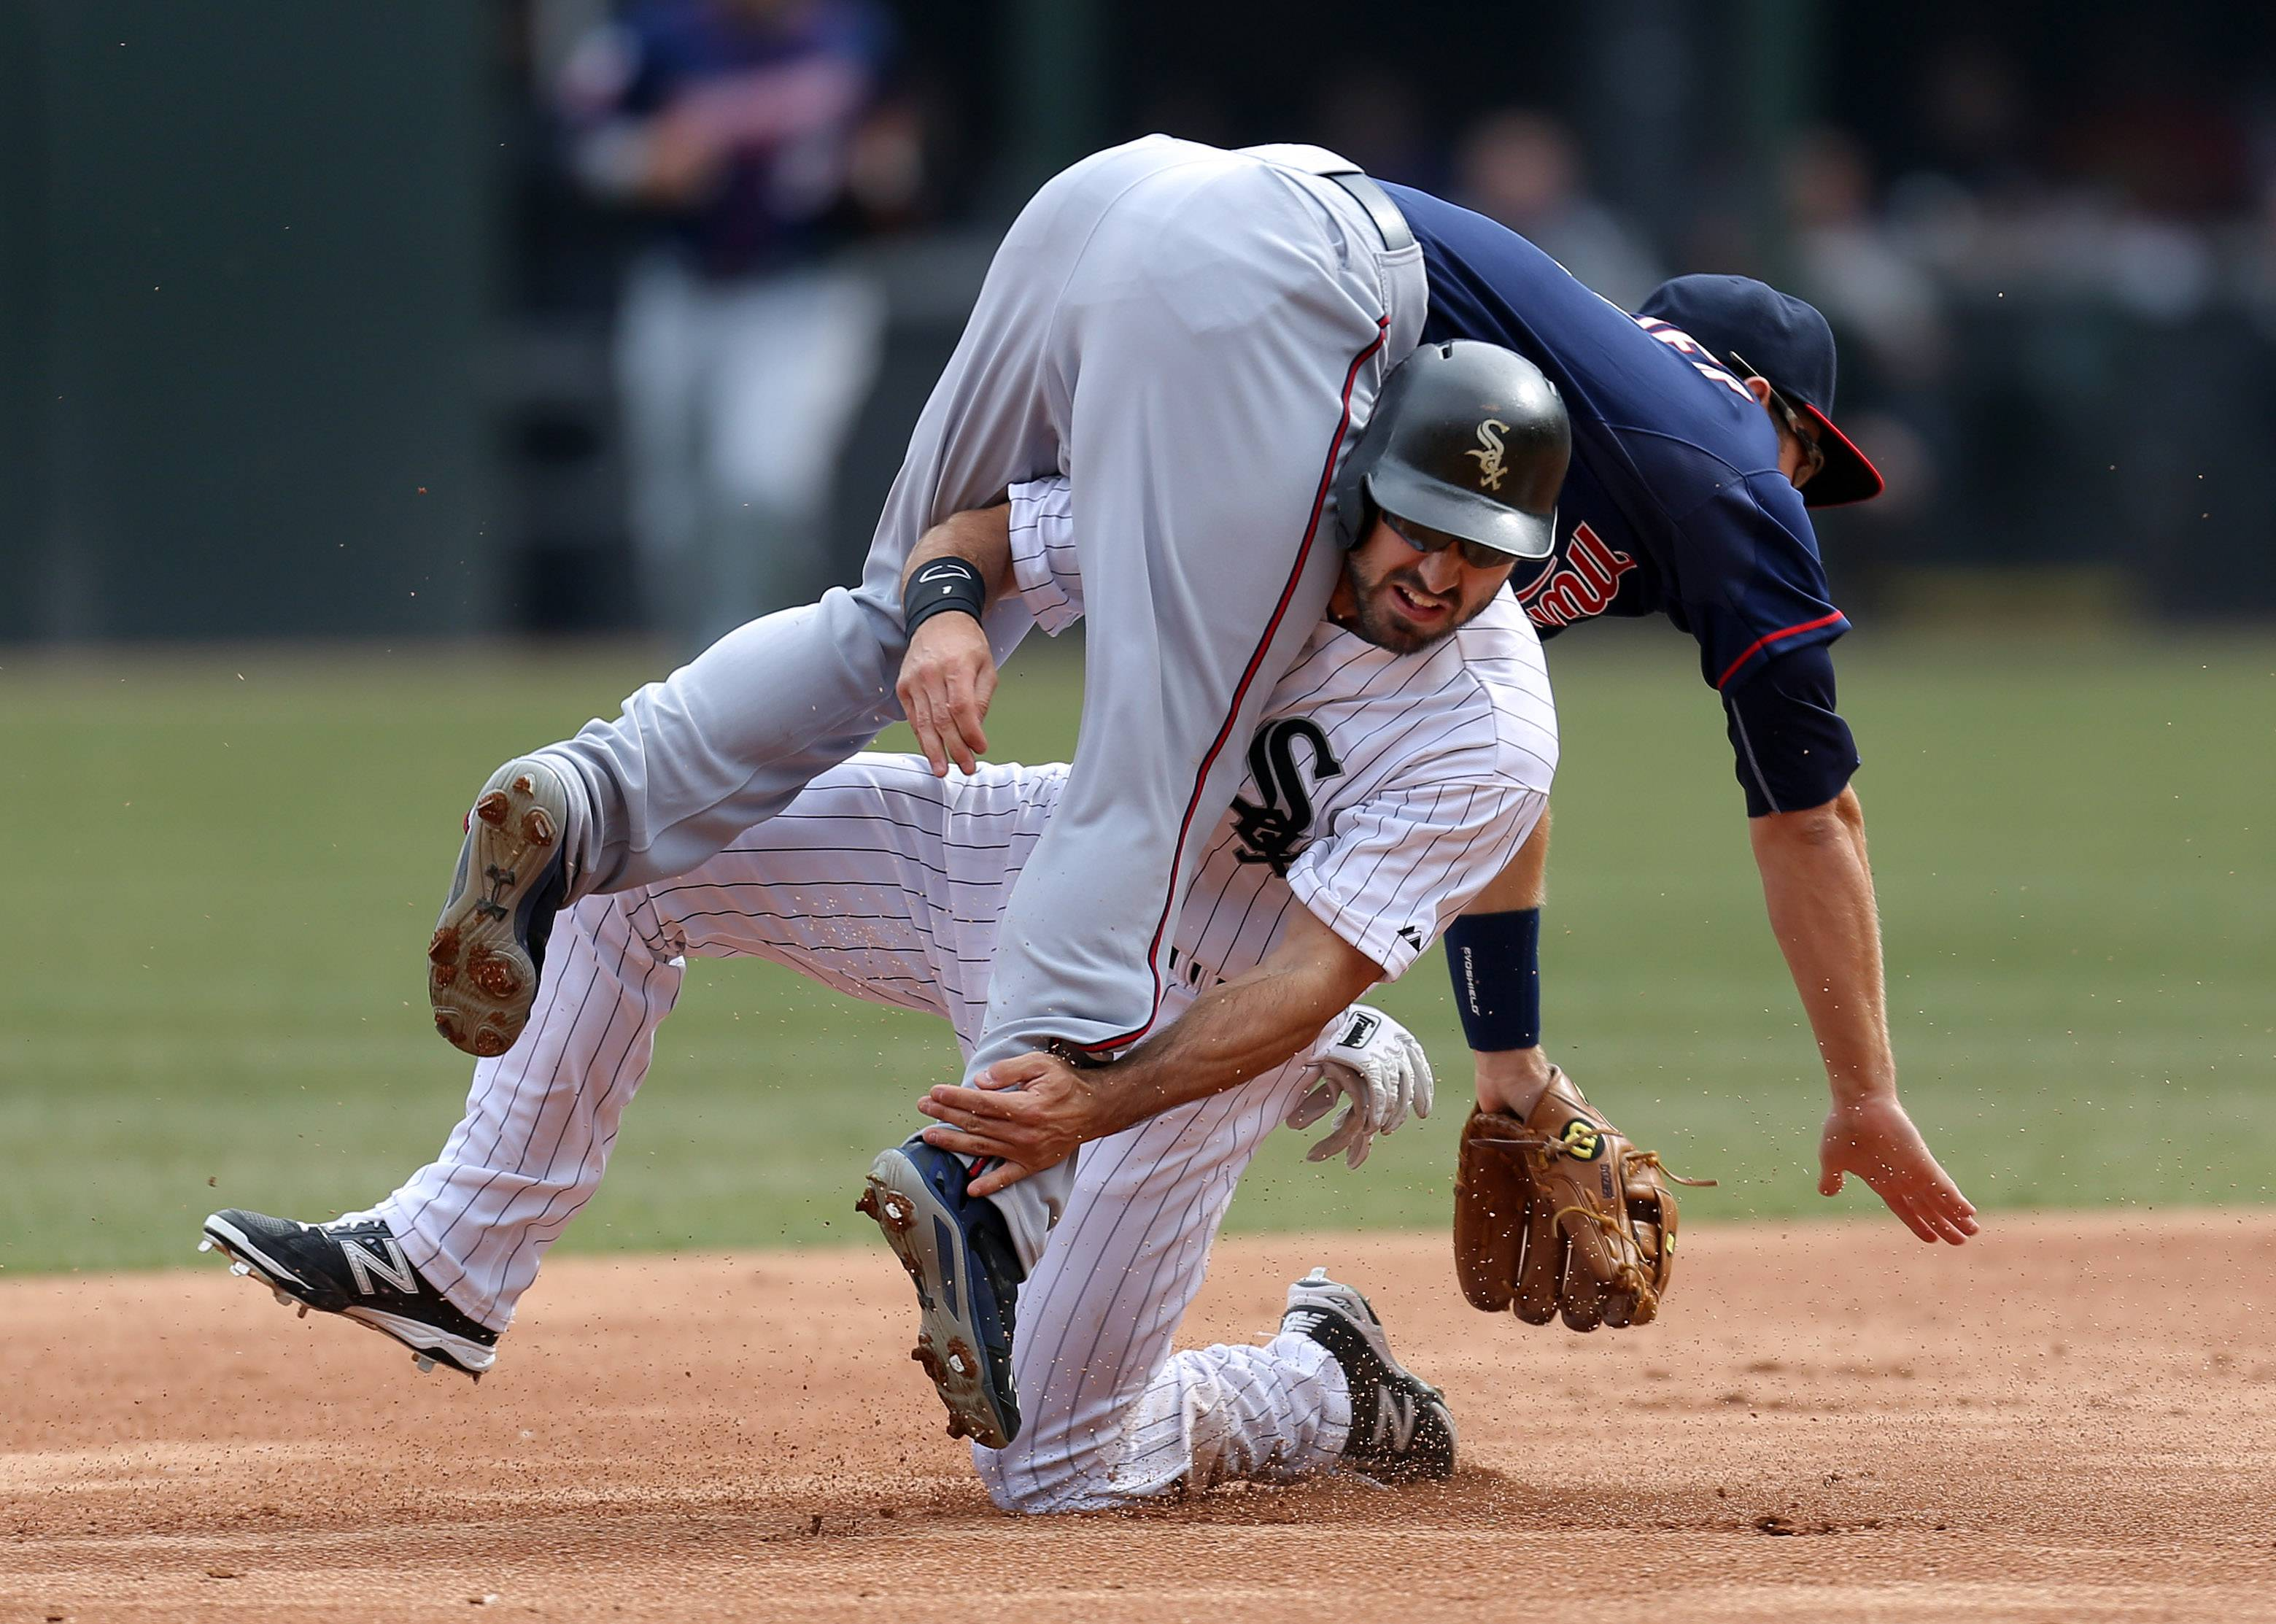 Adam Eaton gets tangled up with Minnesota Twins second baseman Brian Dozier at second during the White Sox home opener Monday at U.S. Cellular Field.